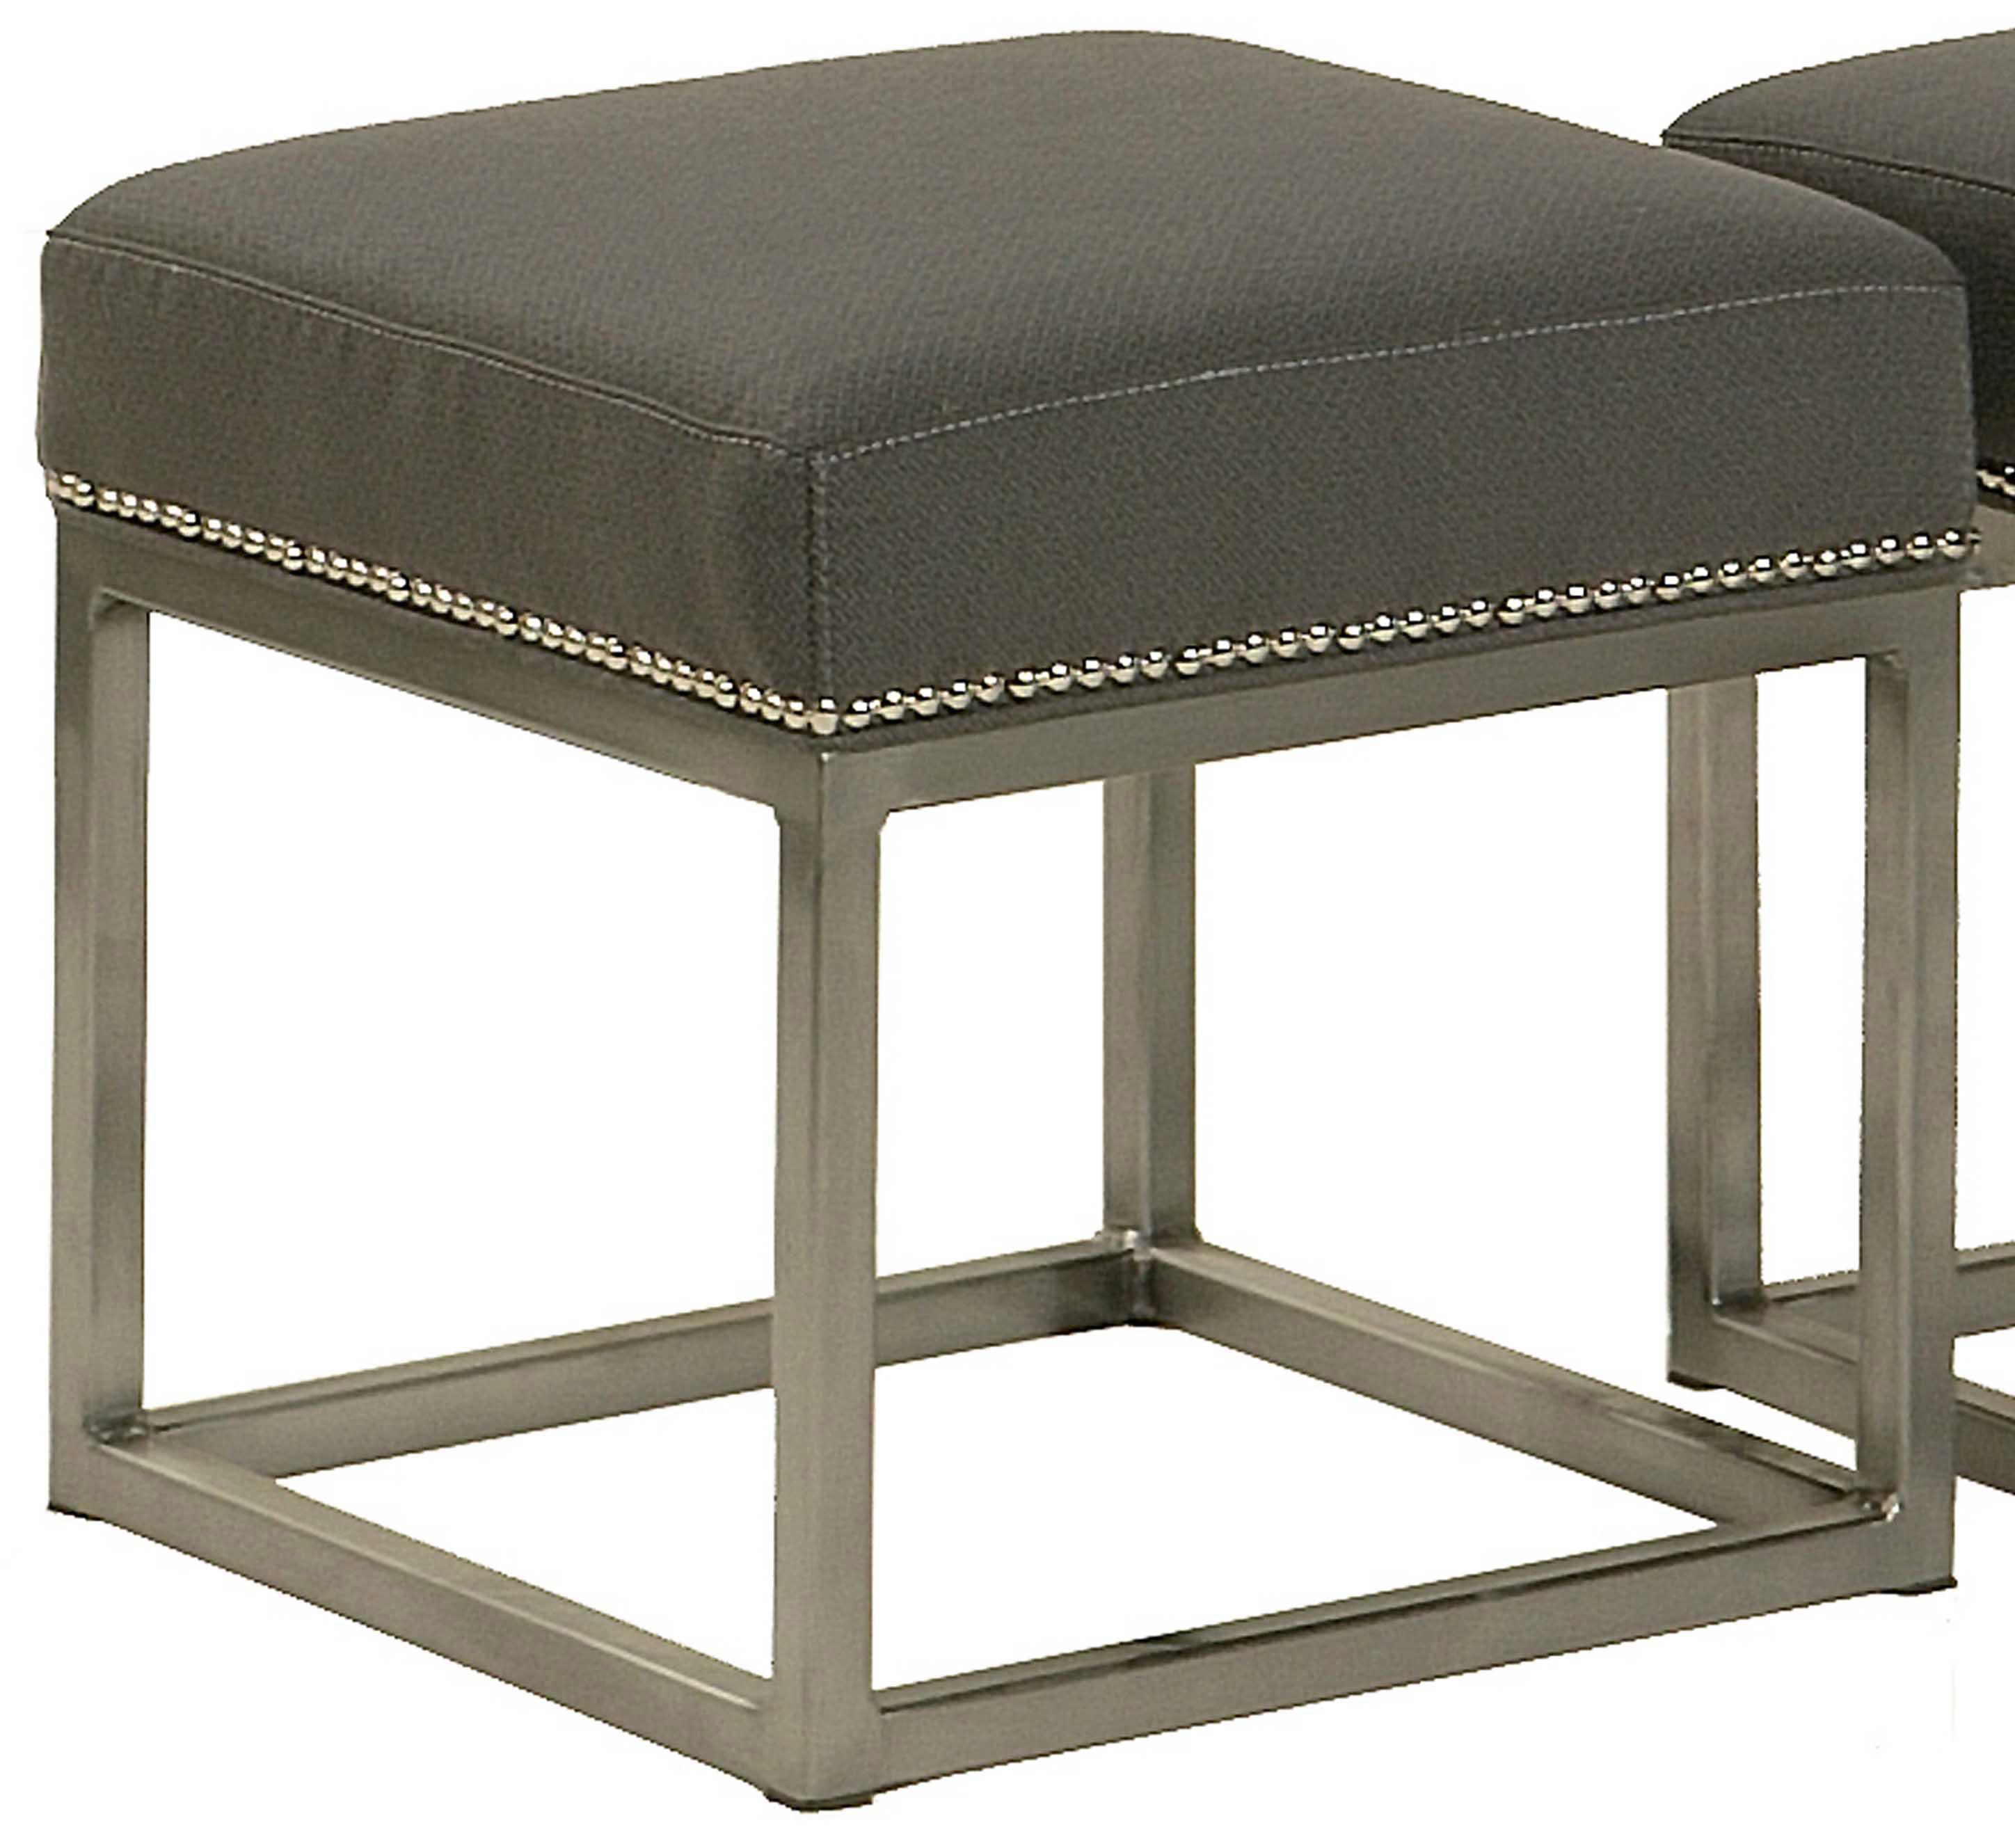 Jonathan Louis Andre Andre Ottoman - Rooms and Rest - Ottoman